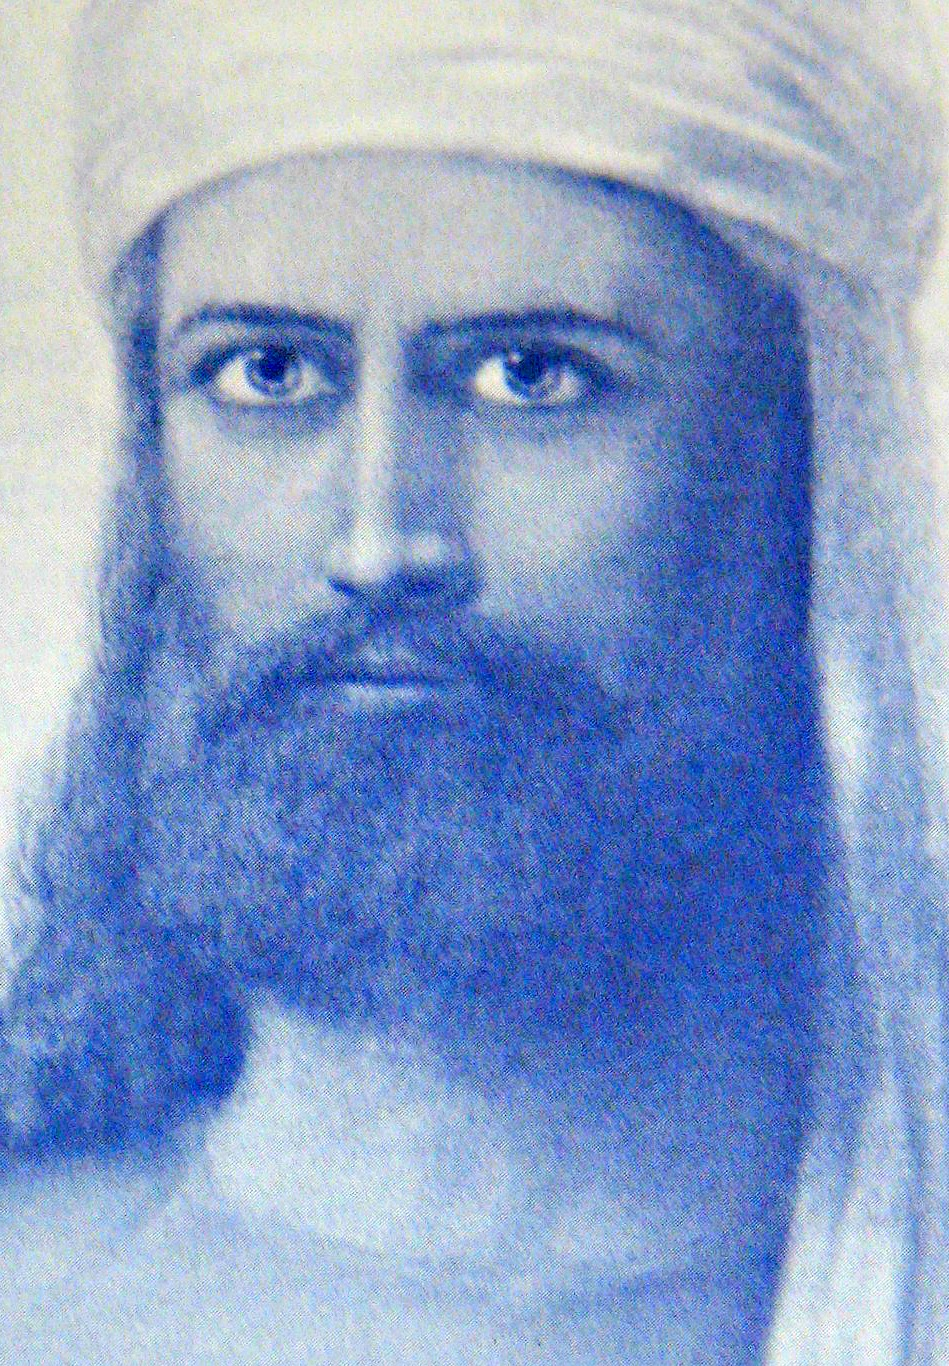 #2 - Divine Father El Morya : 3/14/19 - 8:00pm - King Code Carrying, Ascended Master of Light will survey His Domain, Utilizing his Gifts of Strength, Perseverance and Determination to Deliver YOUR Rightful Essence, via RIGHT ACTION Unto You.This Divine Father will bring you aspects of Your Divine Essence within the Realm of His Grasp and through his unique expertise. Each Session is tailored to fit the unique dynamics of each group's sacred reintegration process. Each Divine Father will be assisted by YOUR Teams of Light and Your Higher Intelligence to Ensure that you receive exactly what you need in each moment. A brief discussion and Journey into Your Sacred Heart Space will be included.